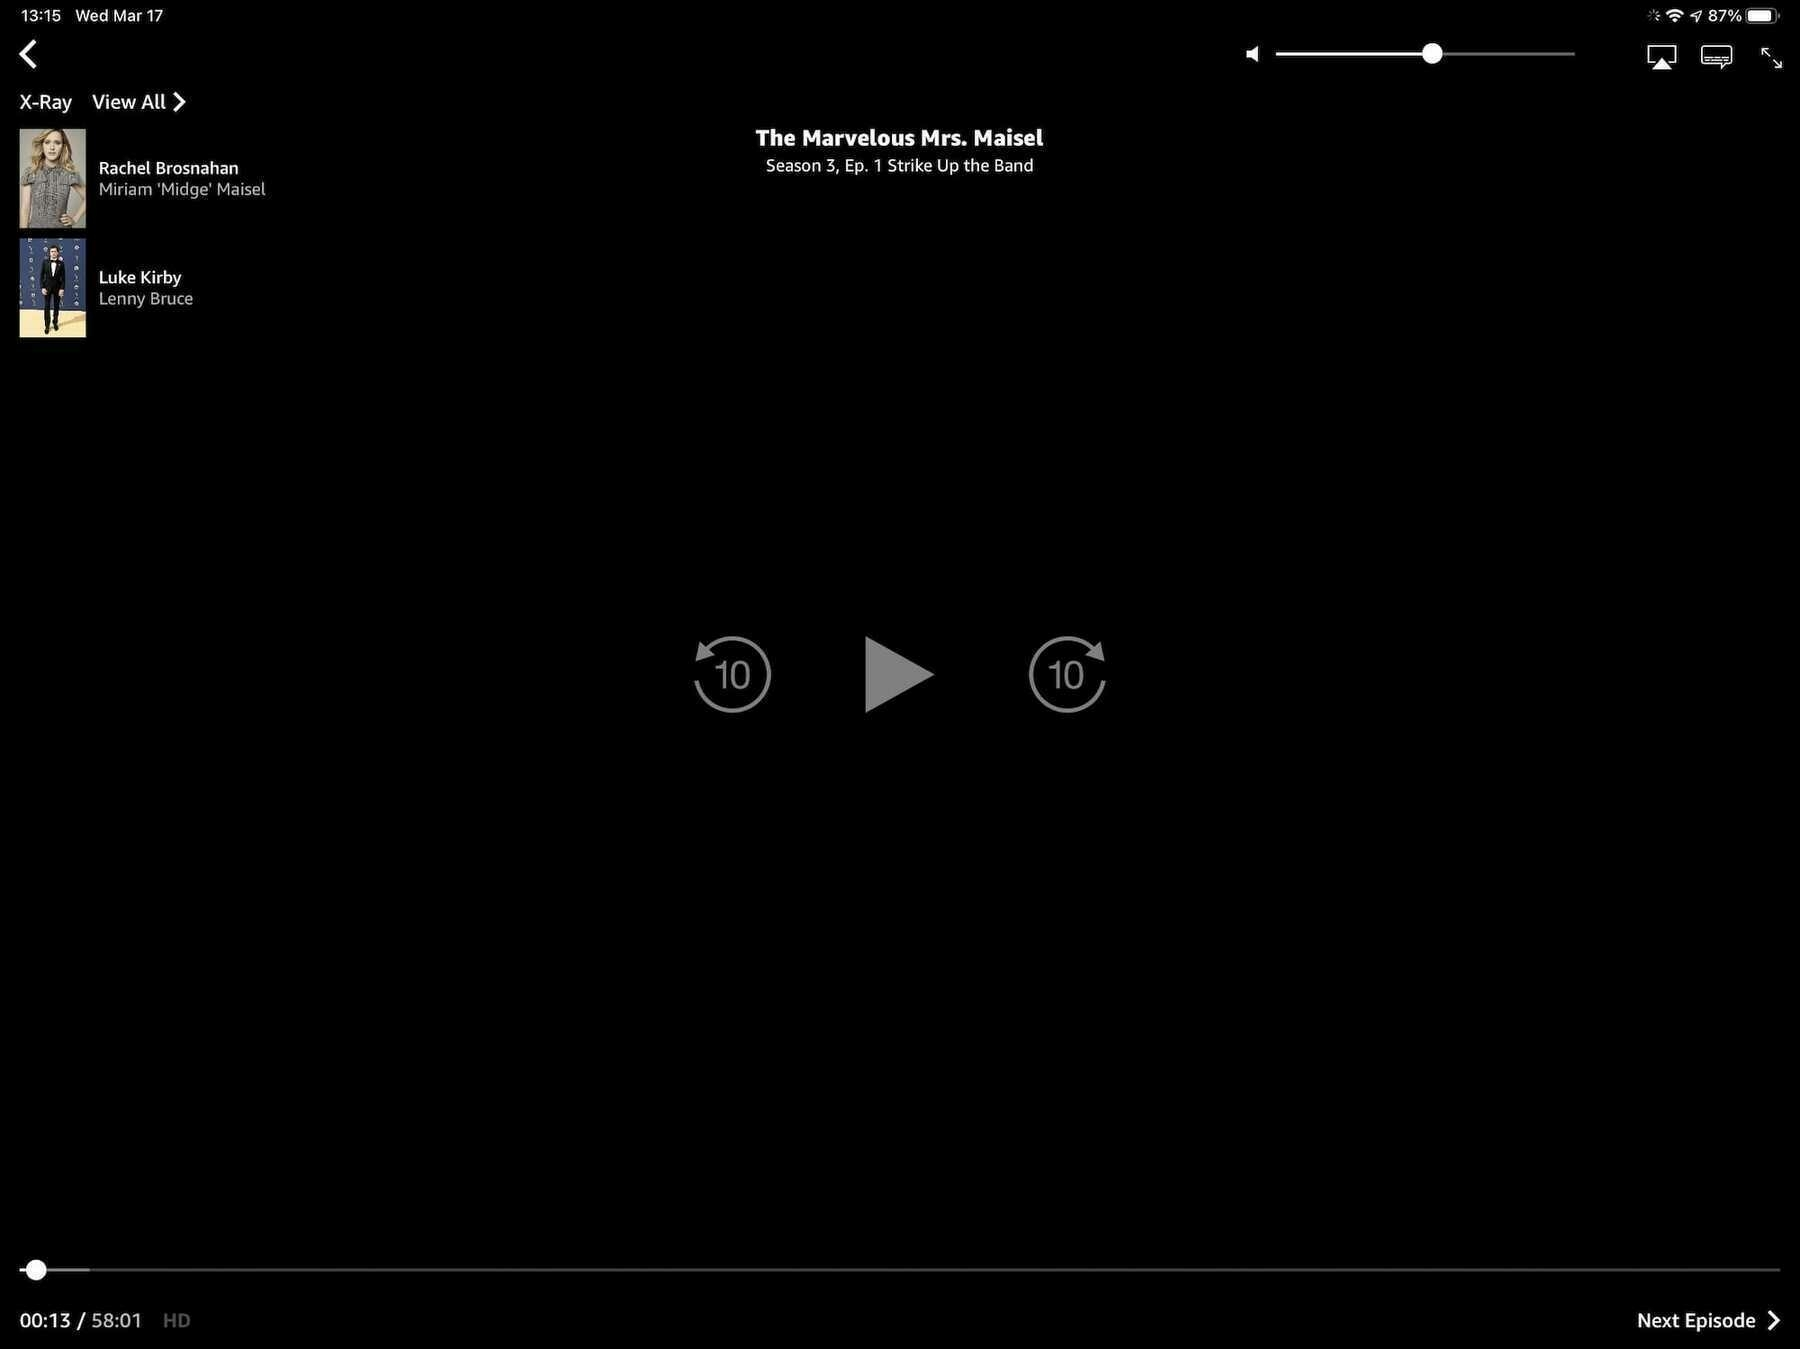 The Prime Video player interface.